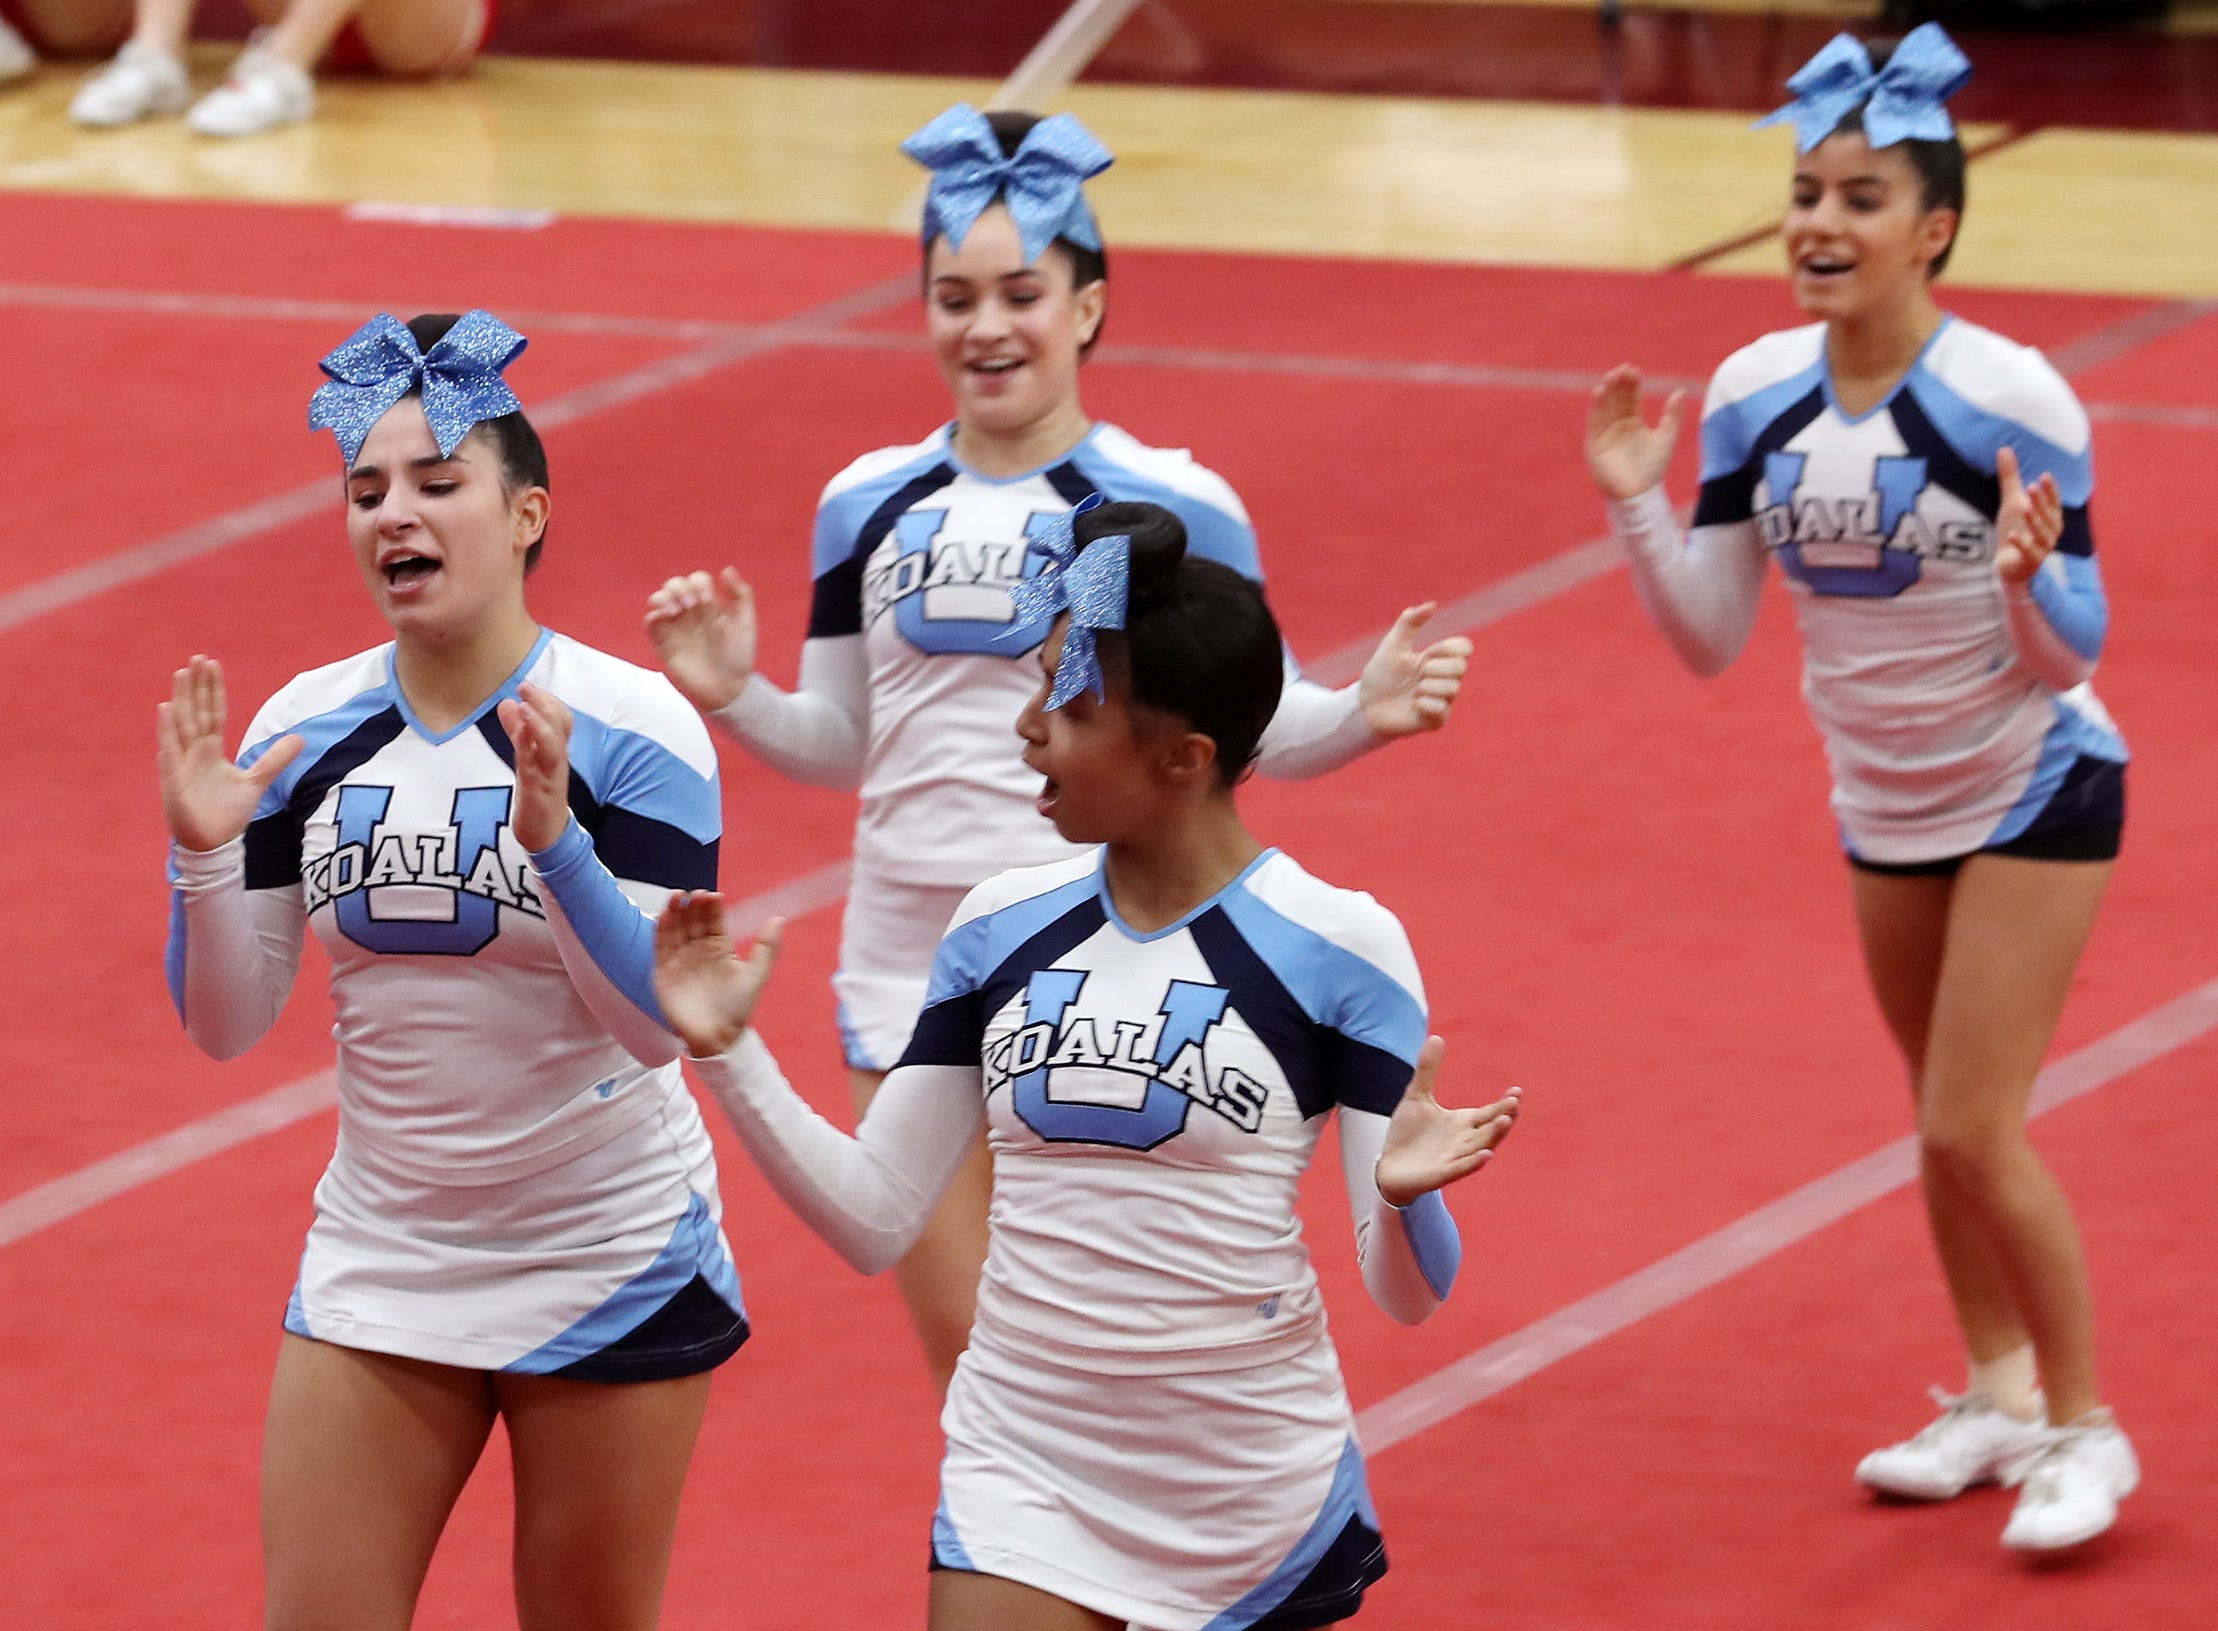 The Ursuline School competes during the Section 1 cheerleading championships at Arlington High School in Freedom Plains Feb. 16, 2019.